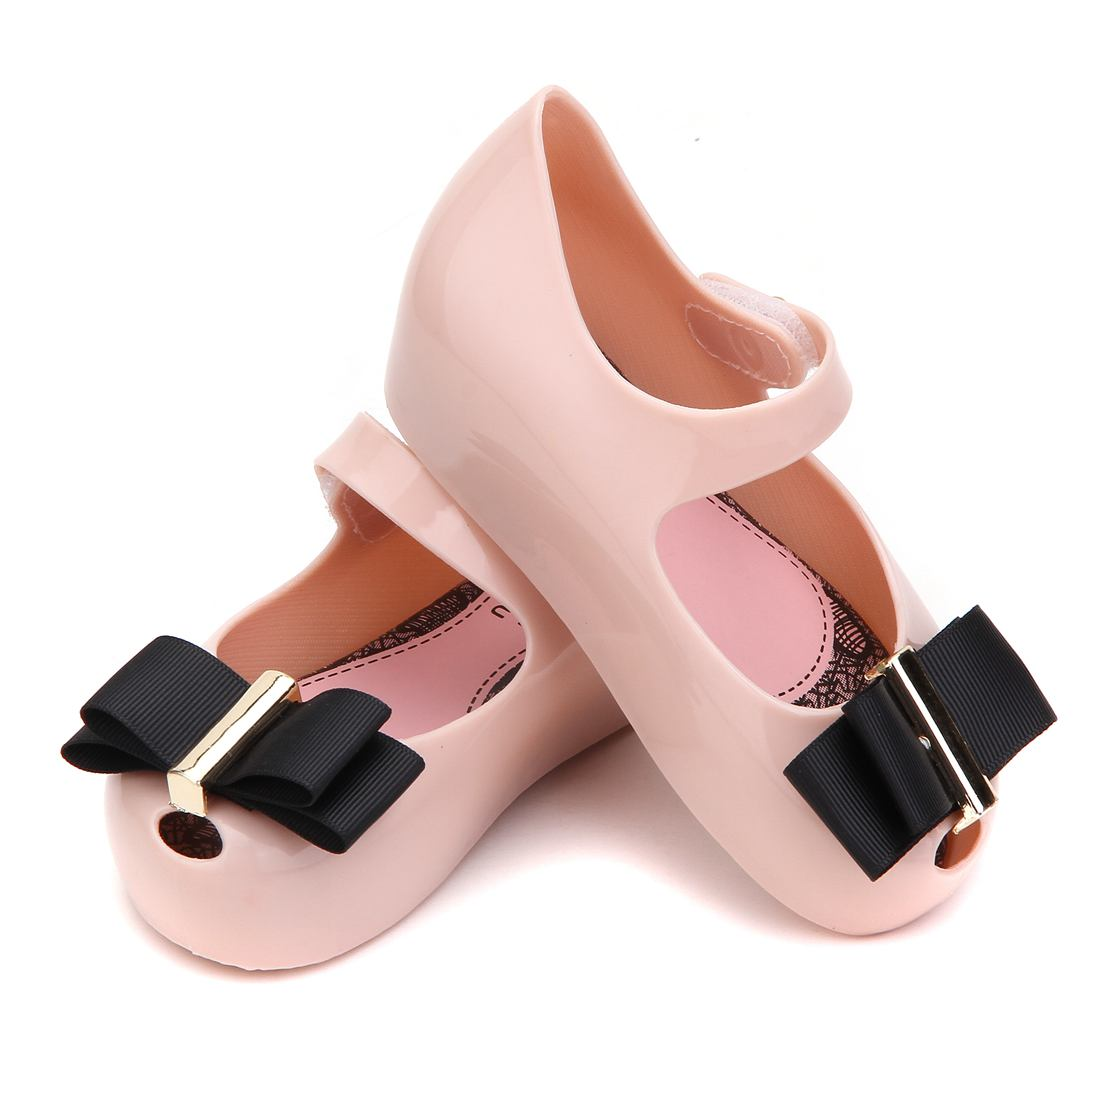 74d09cb3b13d6 Mini Melissa 2017 Winter New Black Cloth Bow Girl Sandals Jelly Shoes Soft  Comfort Kids Sandal Winter Shoe Toddler-in Sandals from Mother   Kids on ...